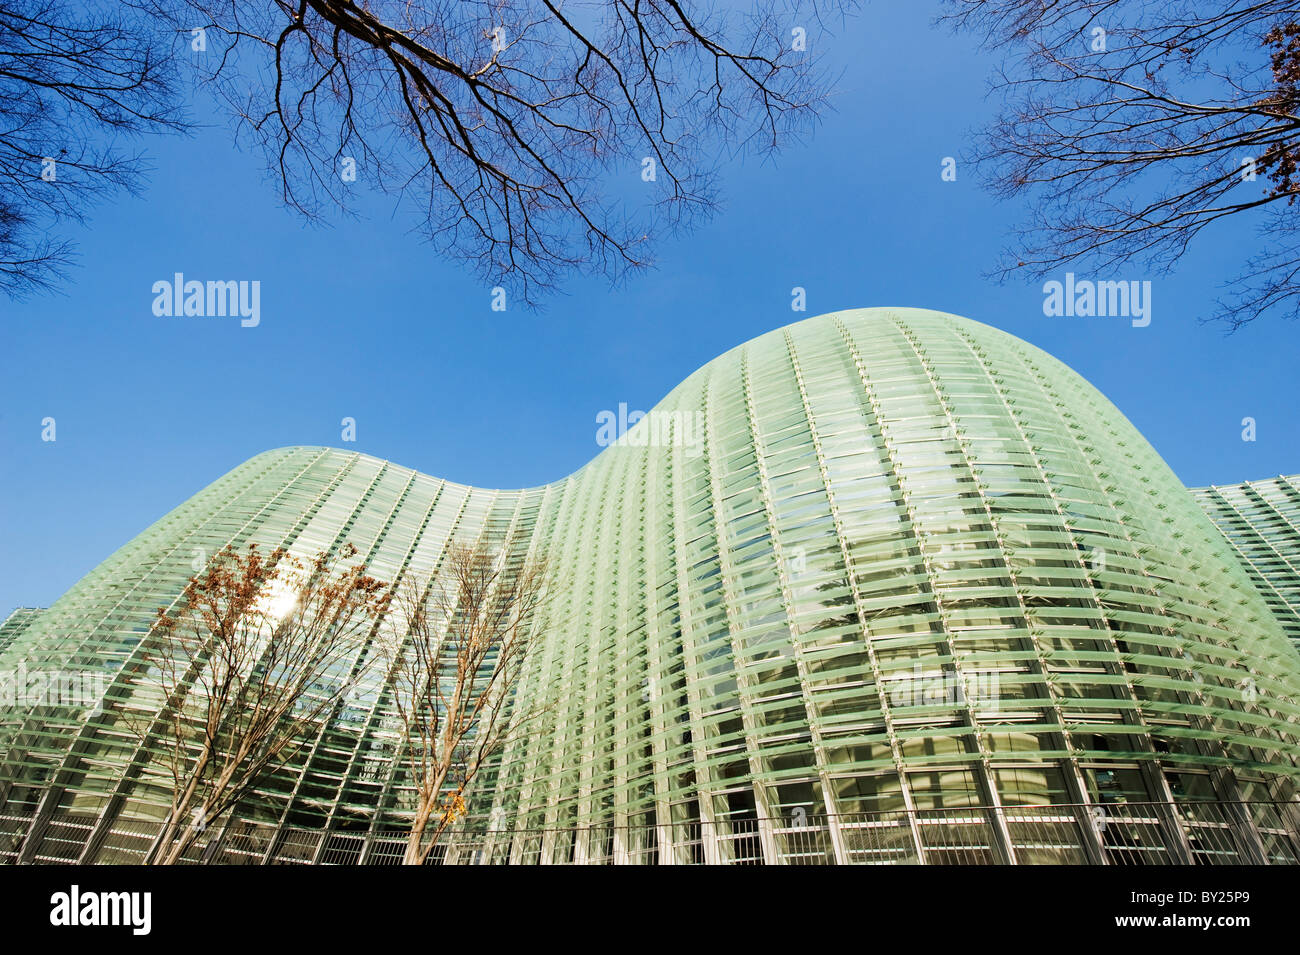 Asia, Japan, Tokyo, Roppongi ward, National Art Centre, NACT, designed by Kisho Kurokawa (2007) - Stock Image